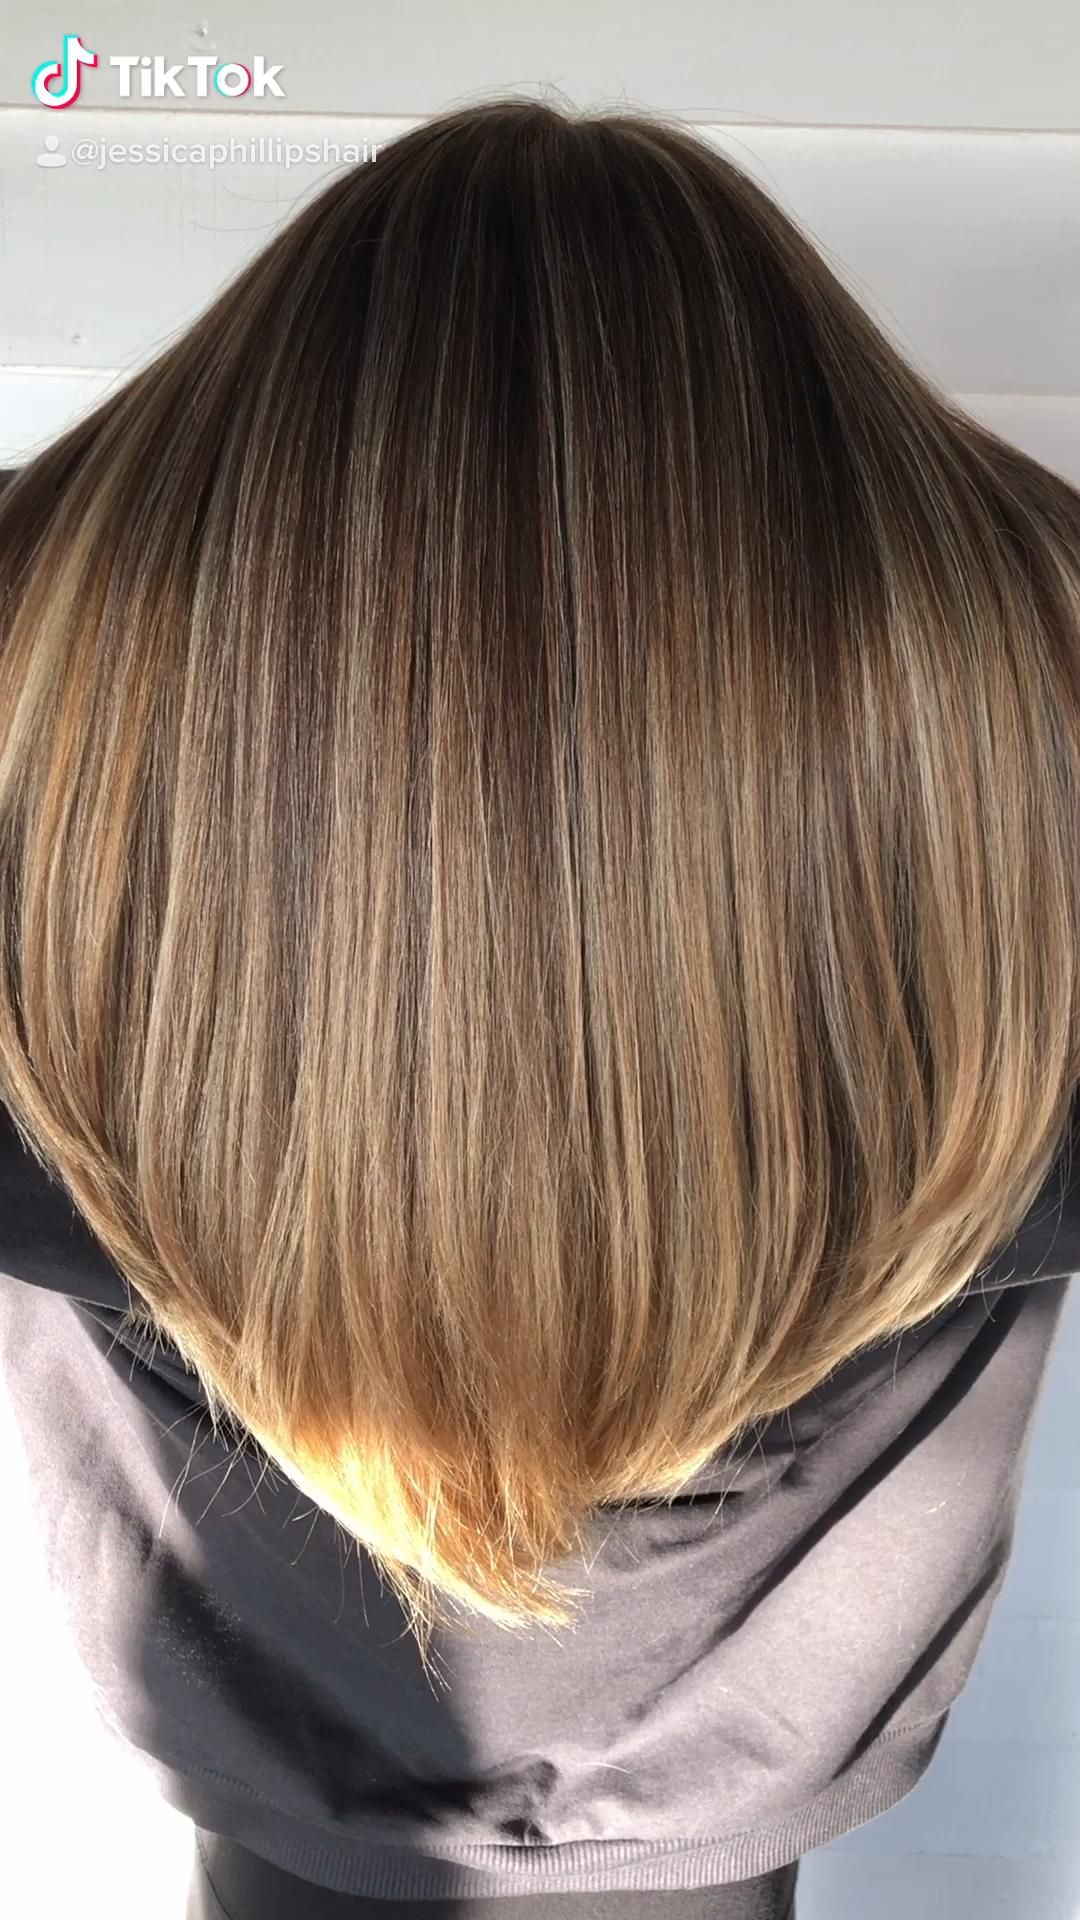 Dimensional balayage on dark brown hair